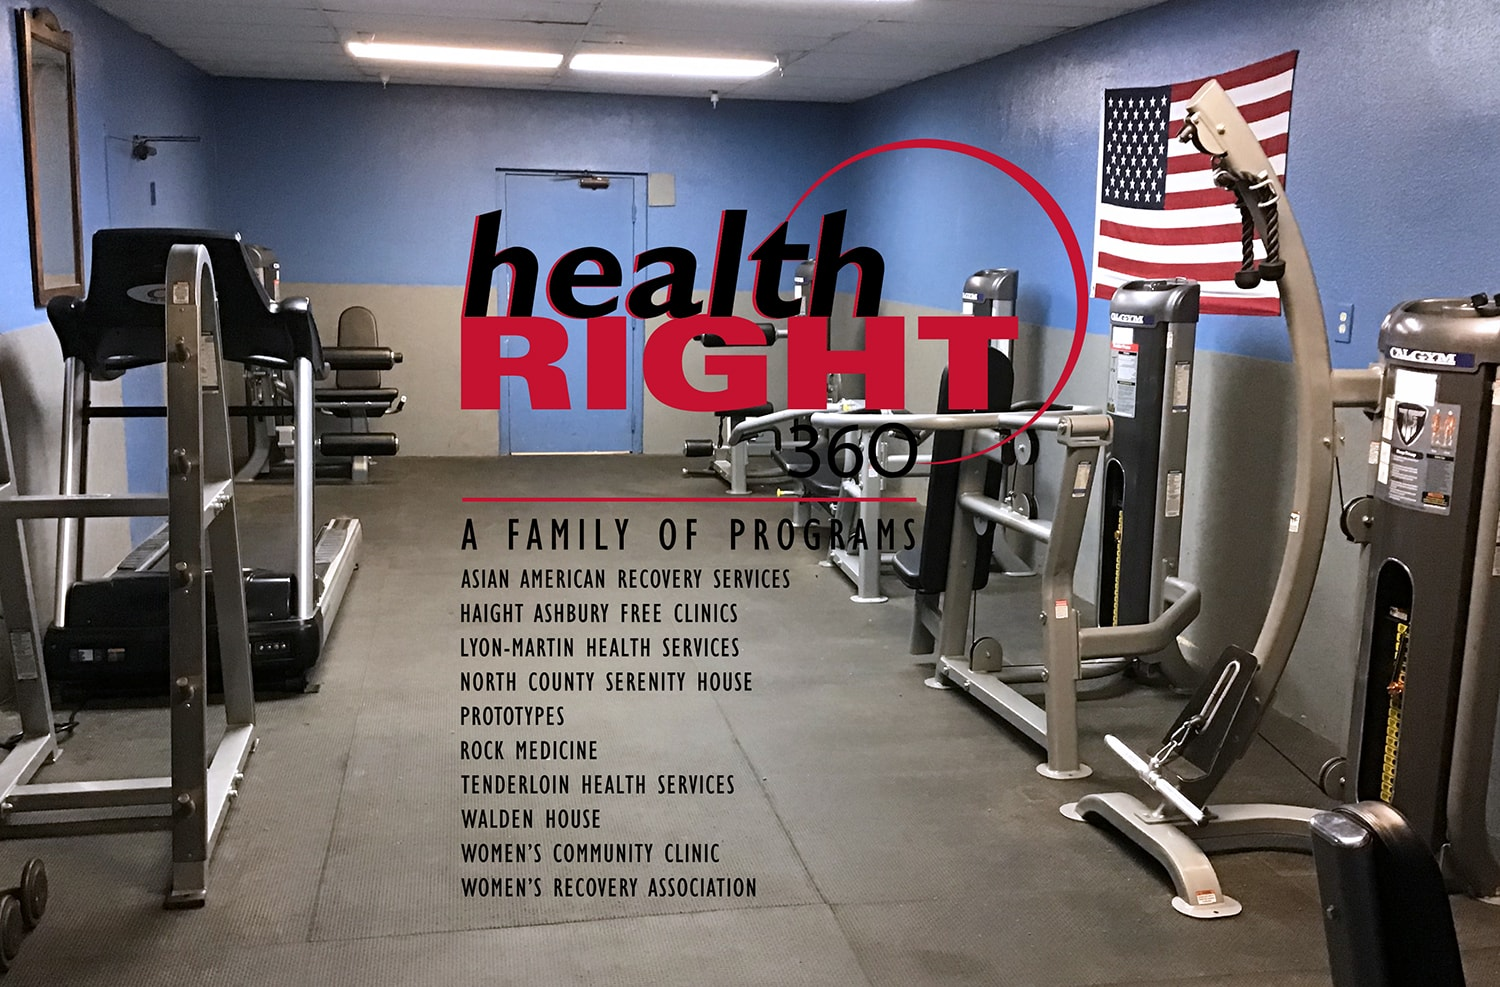 TuffStuff Fitness CalGym Equipment Donation to HealthRIGHT 360